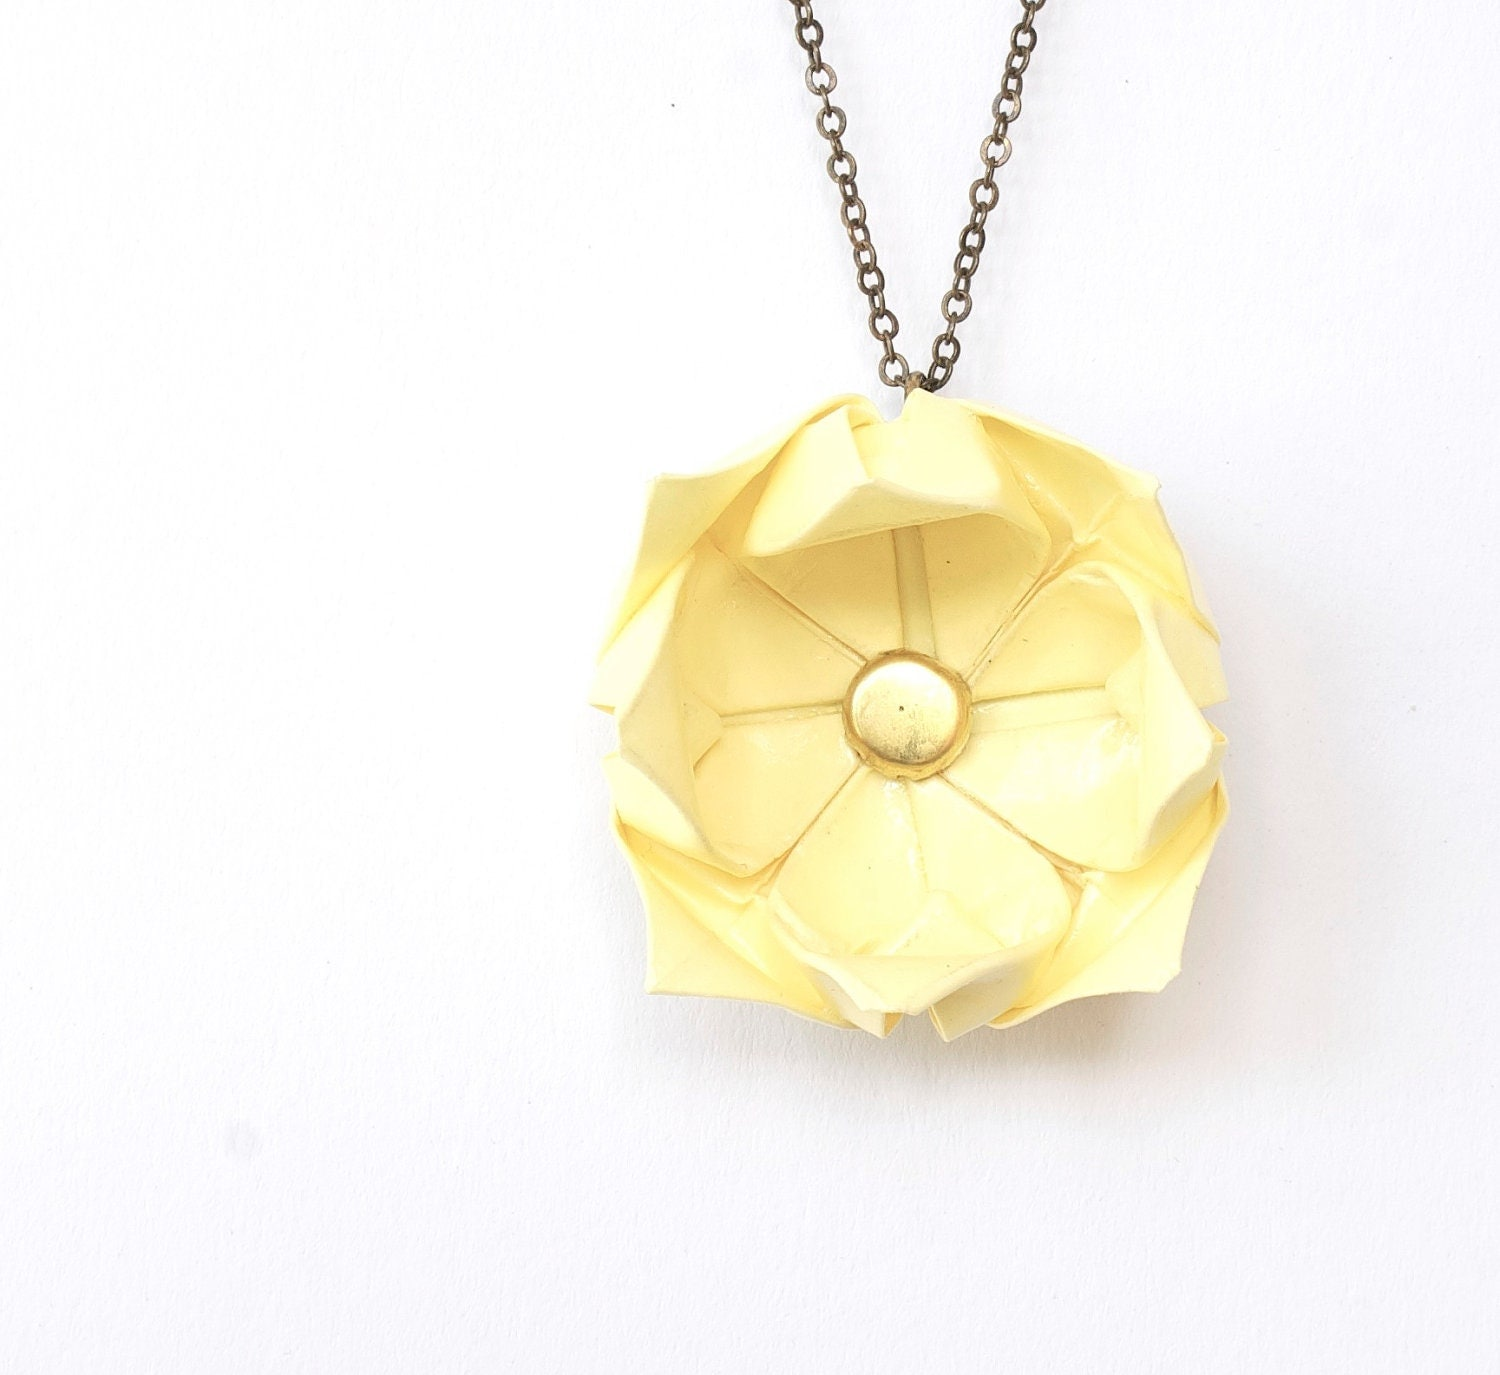 Pastel yellow lotus necklace - origami flower - MilleGrudicarta